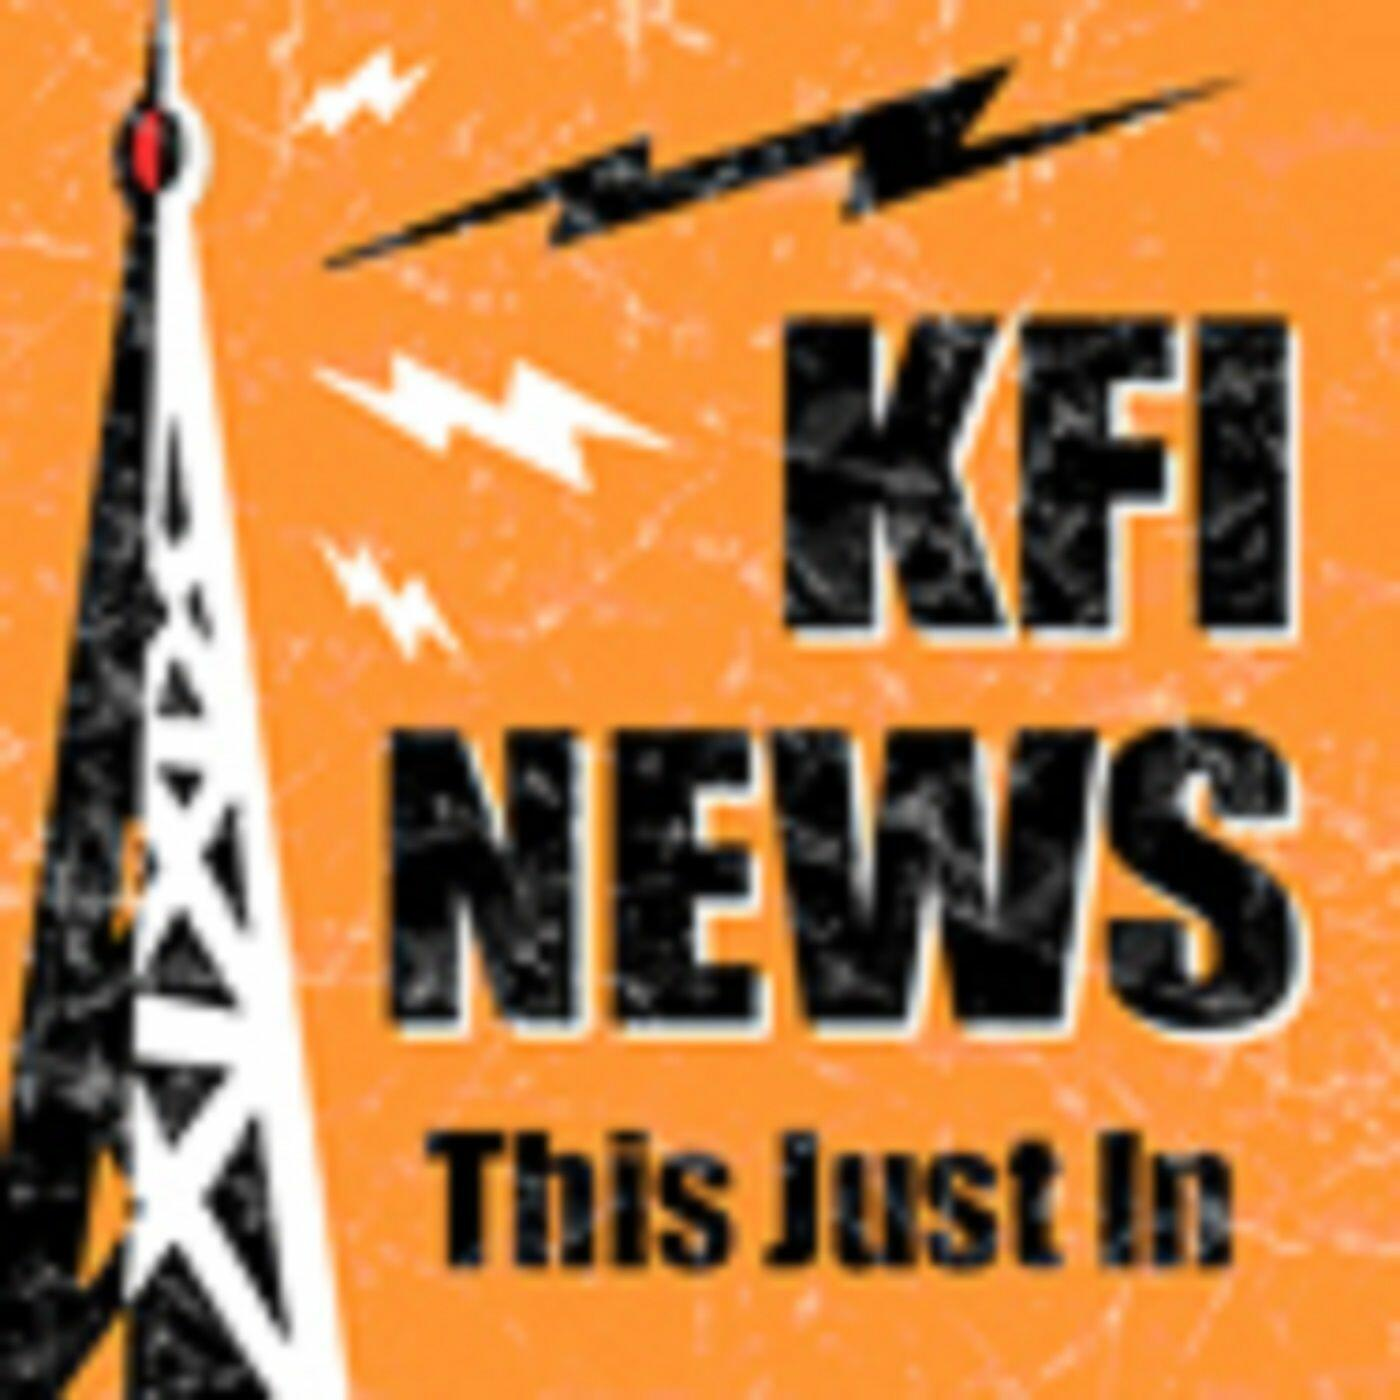 Listen to the KFI's Featured Segments! Episode - @GaryandShannon - Gary Says Bye To John Hickenlooper & Mike Gravel on iHeartRadio | iHeartRadio